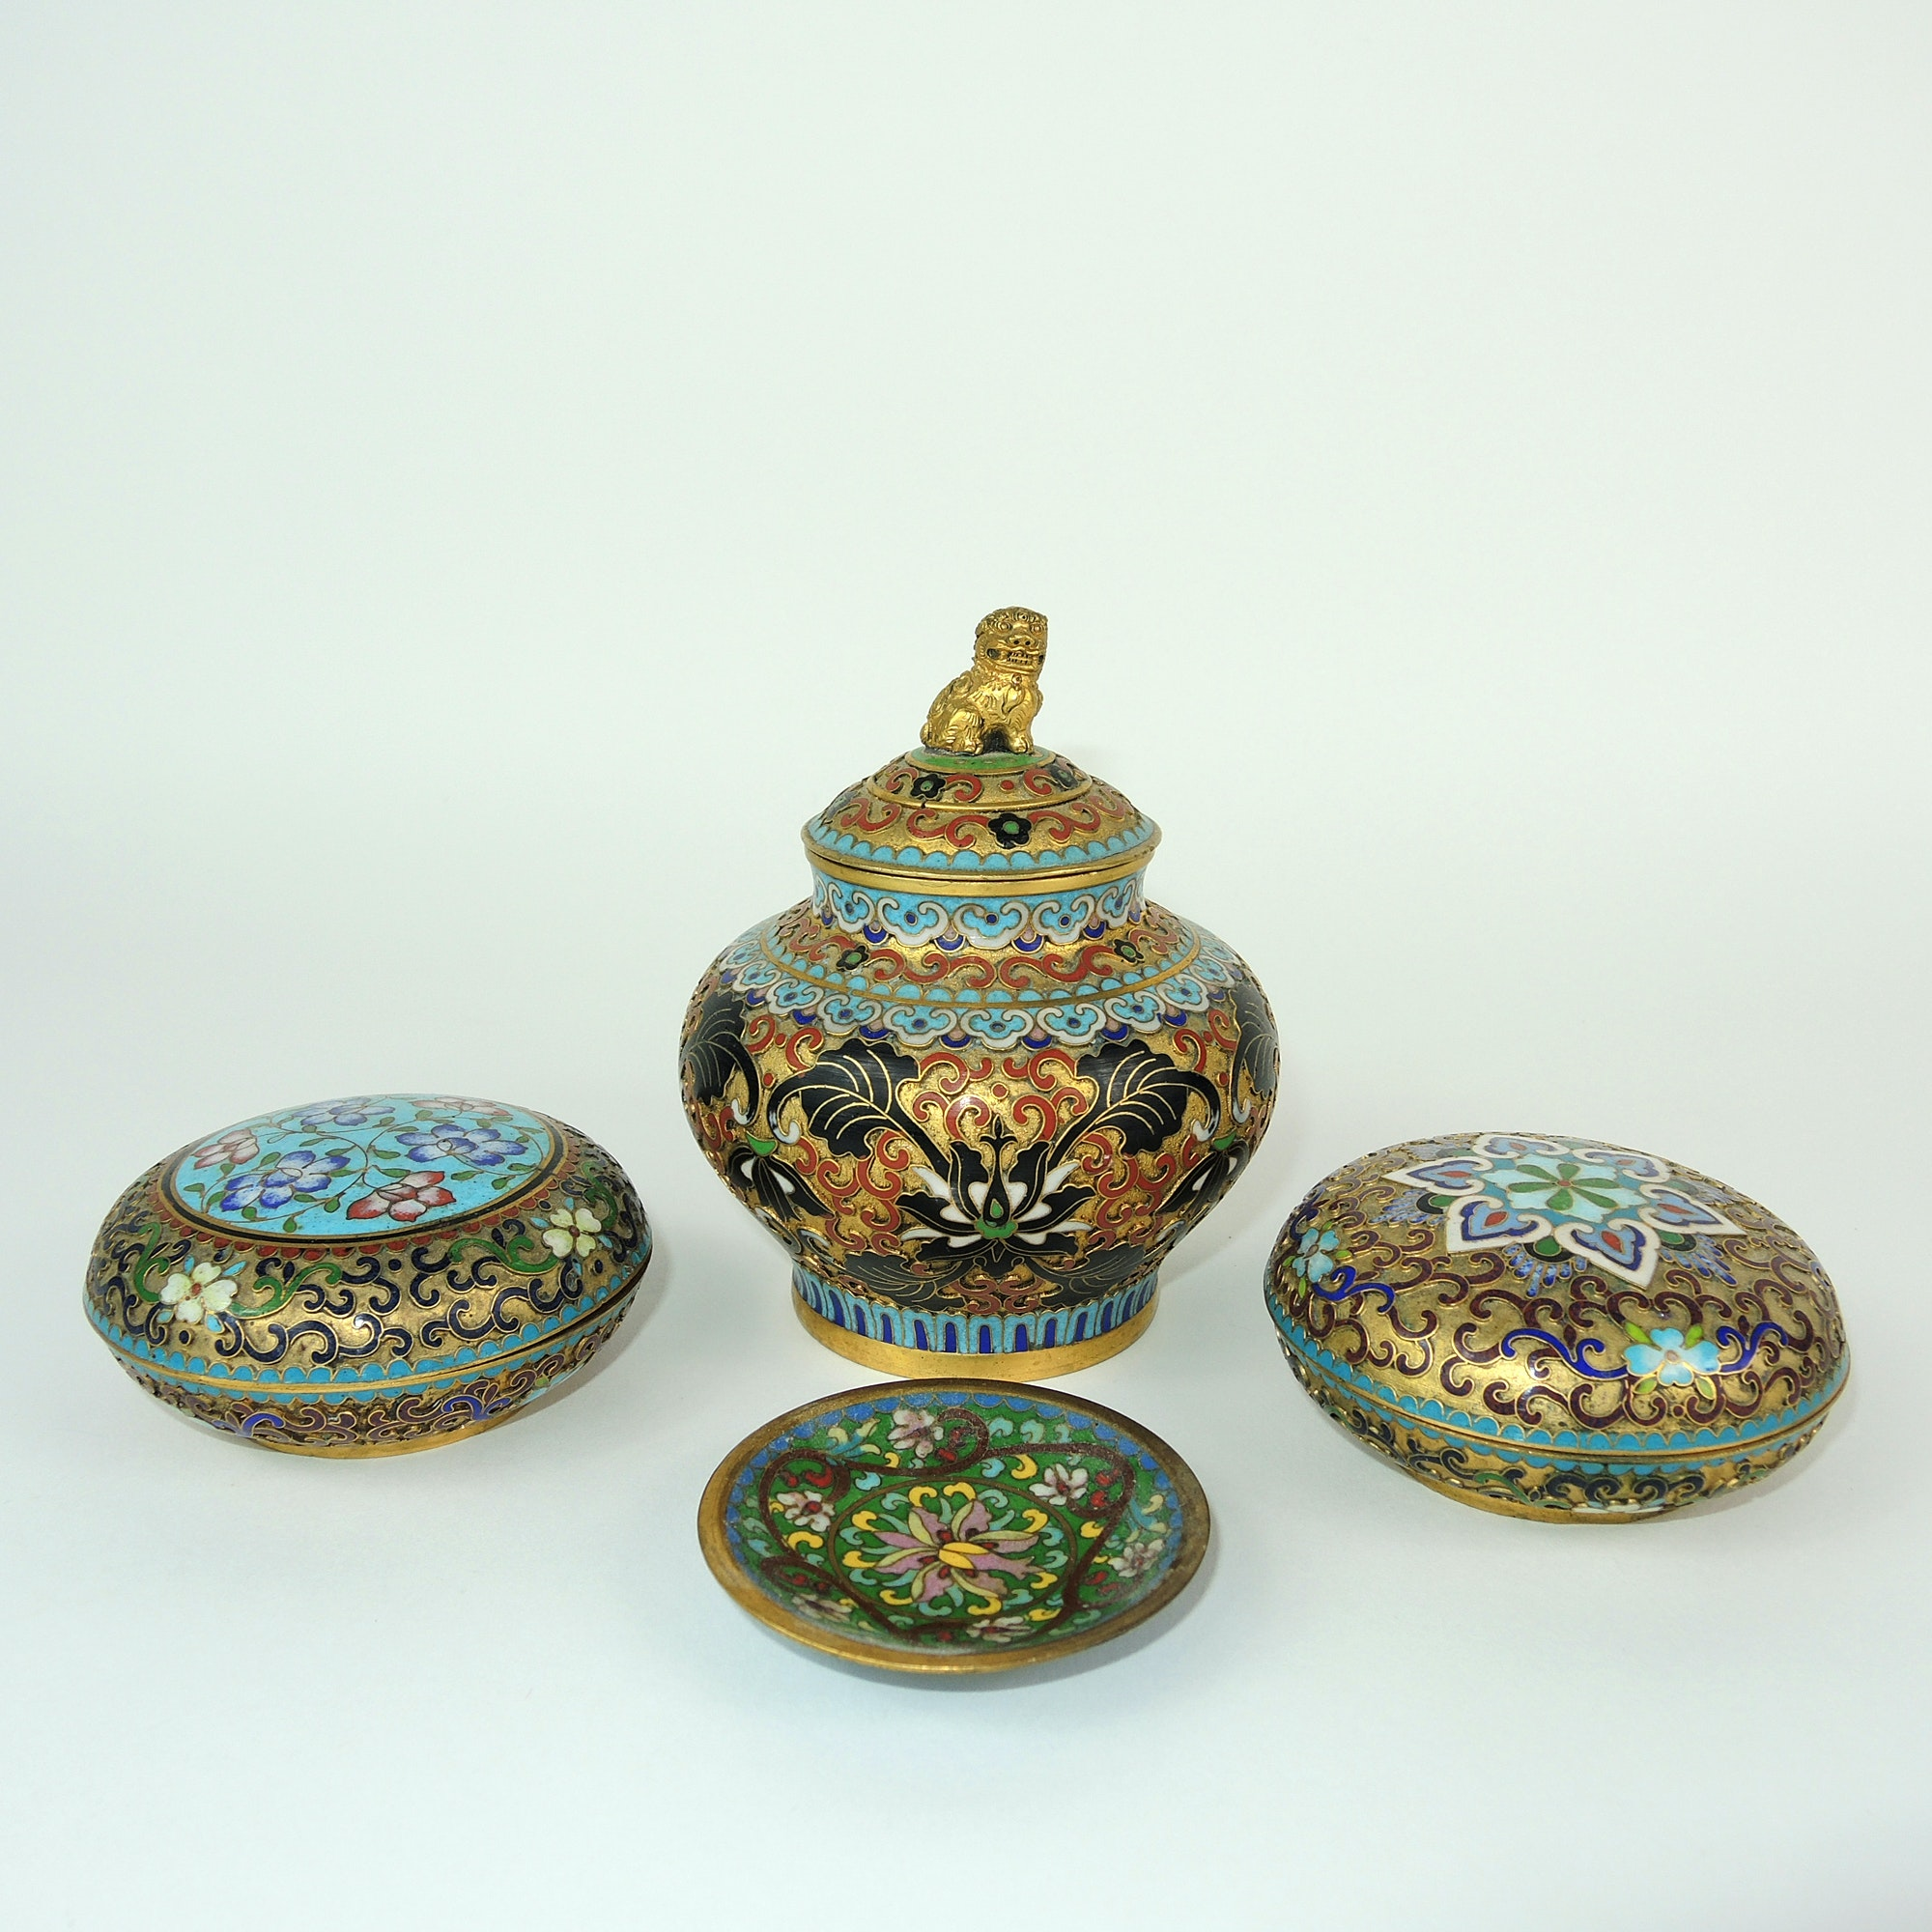 Chinese Cloisonné Lidded Urn and Dishes